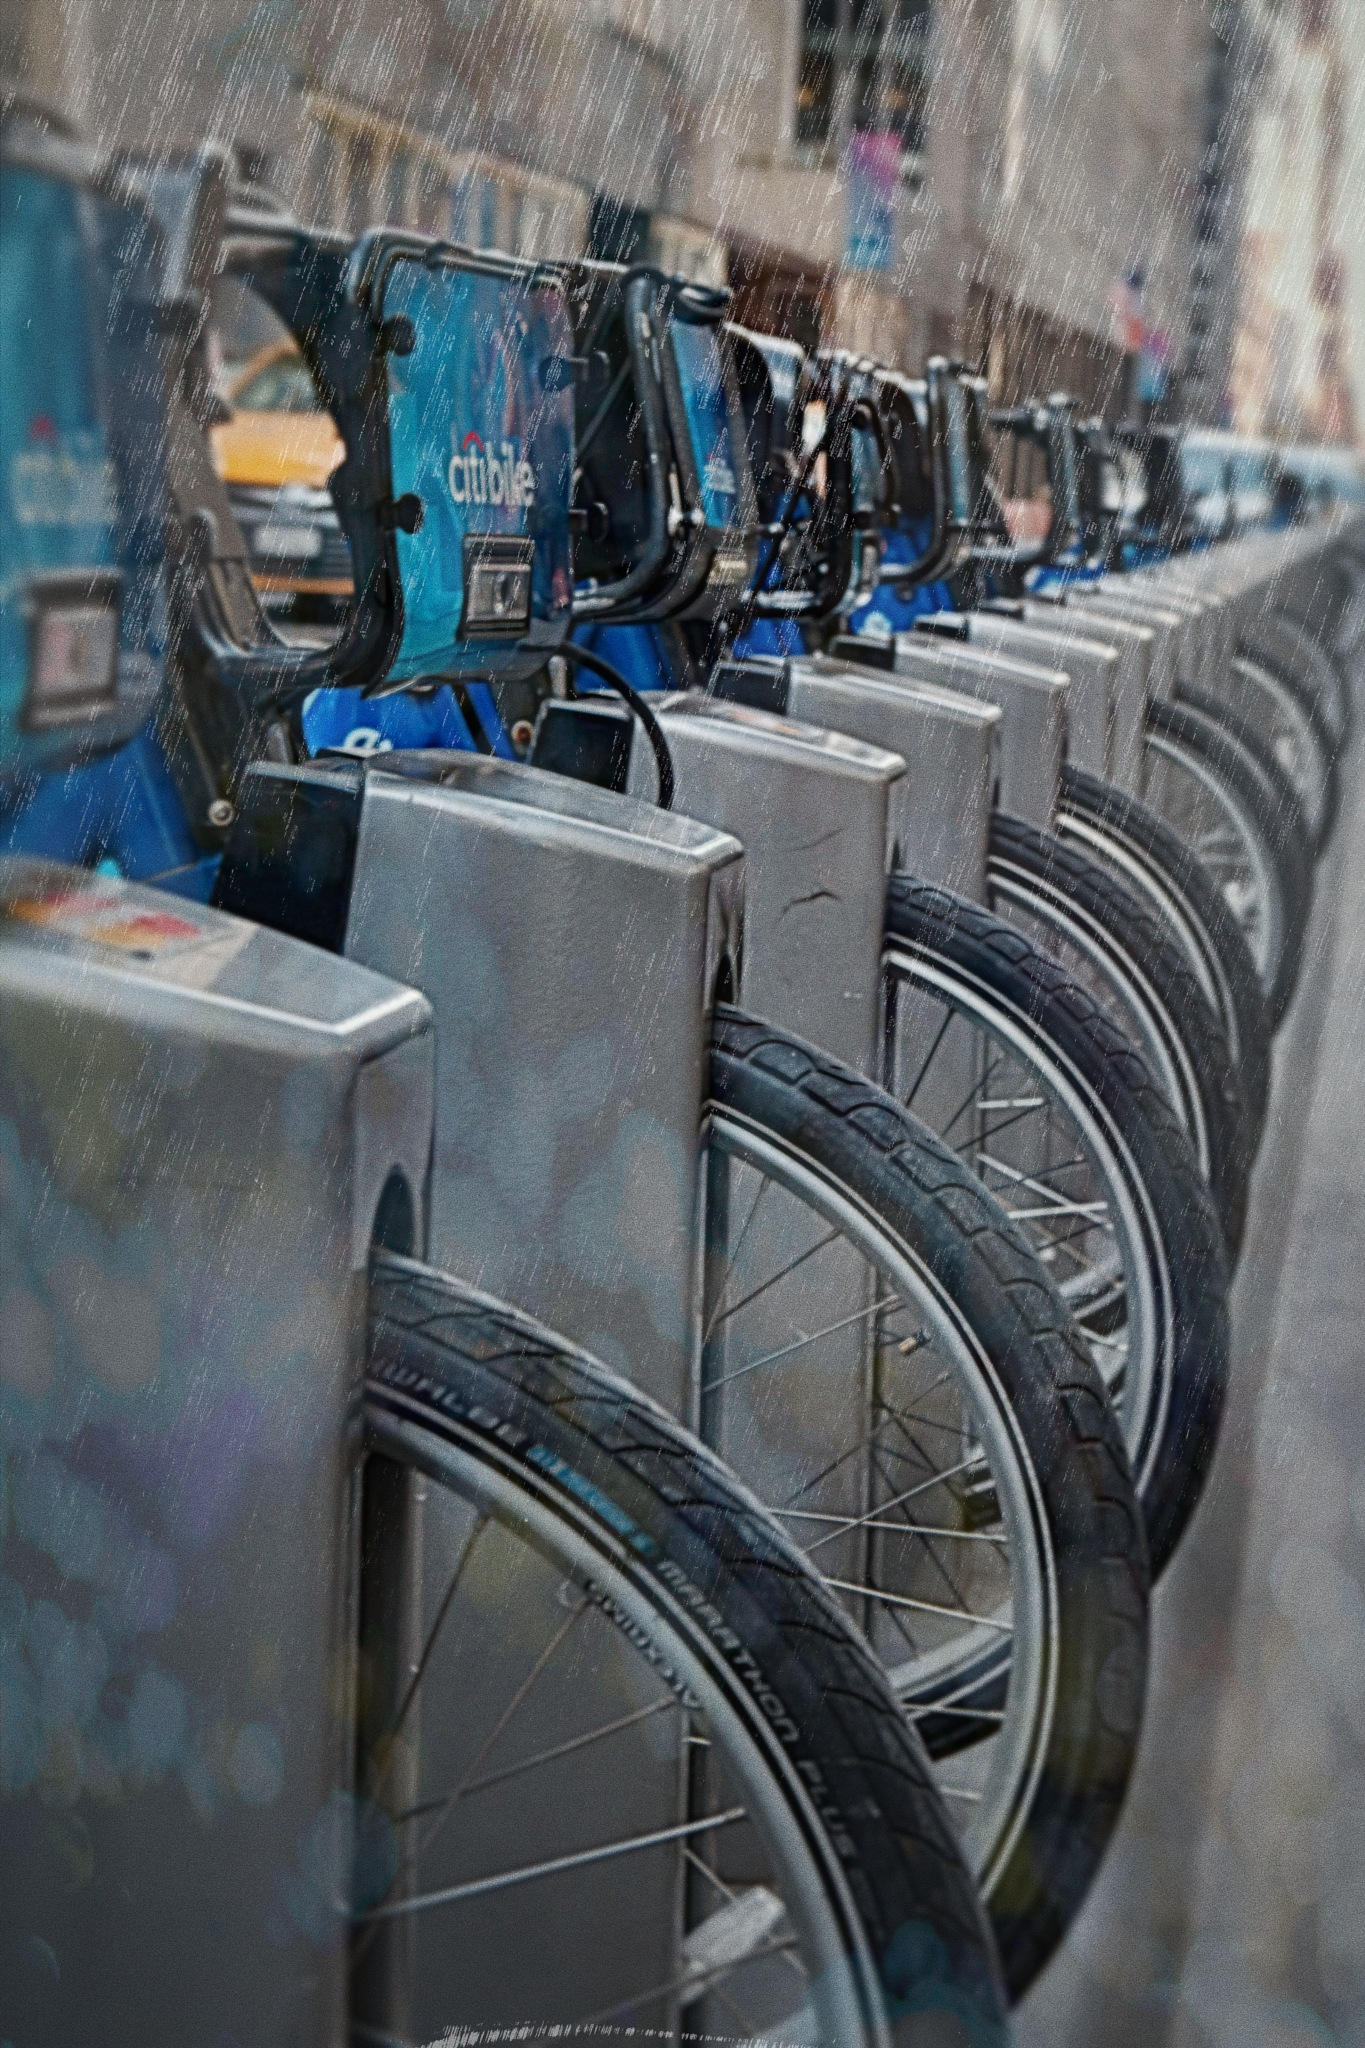 Citibikes by ochemodan